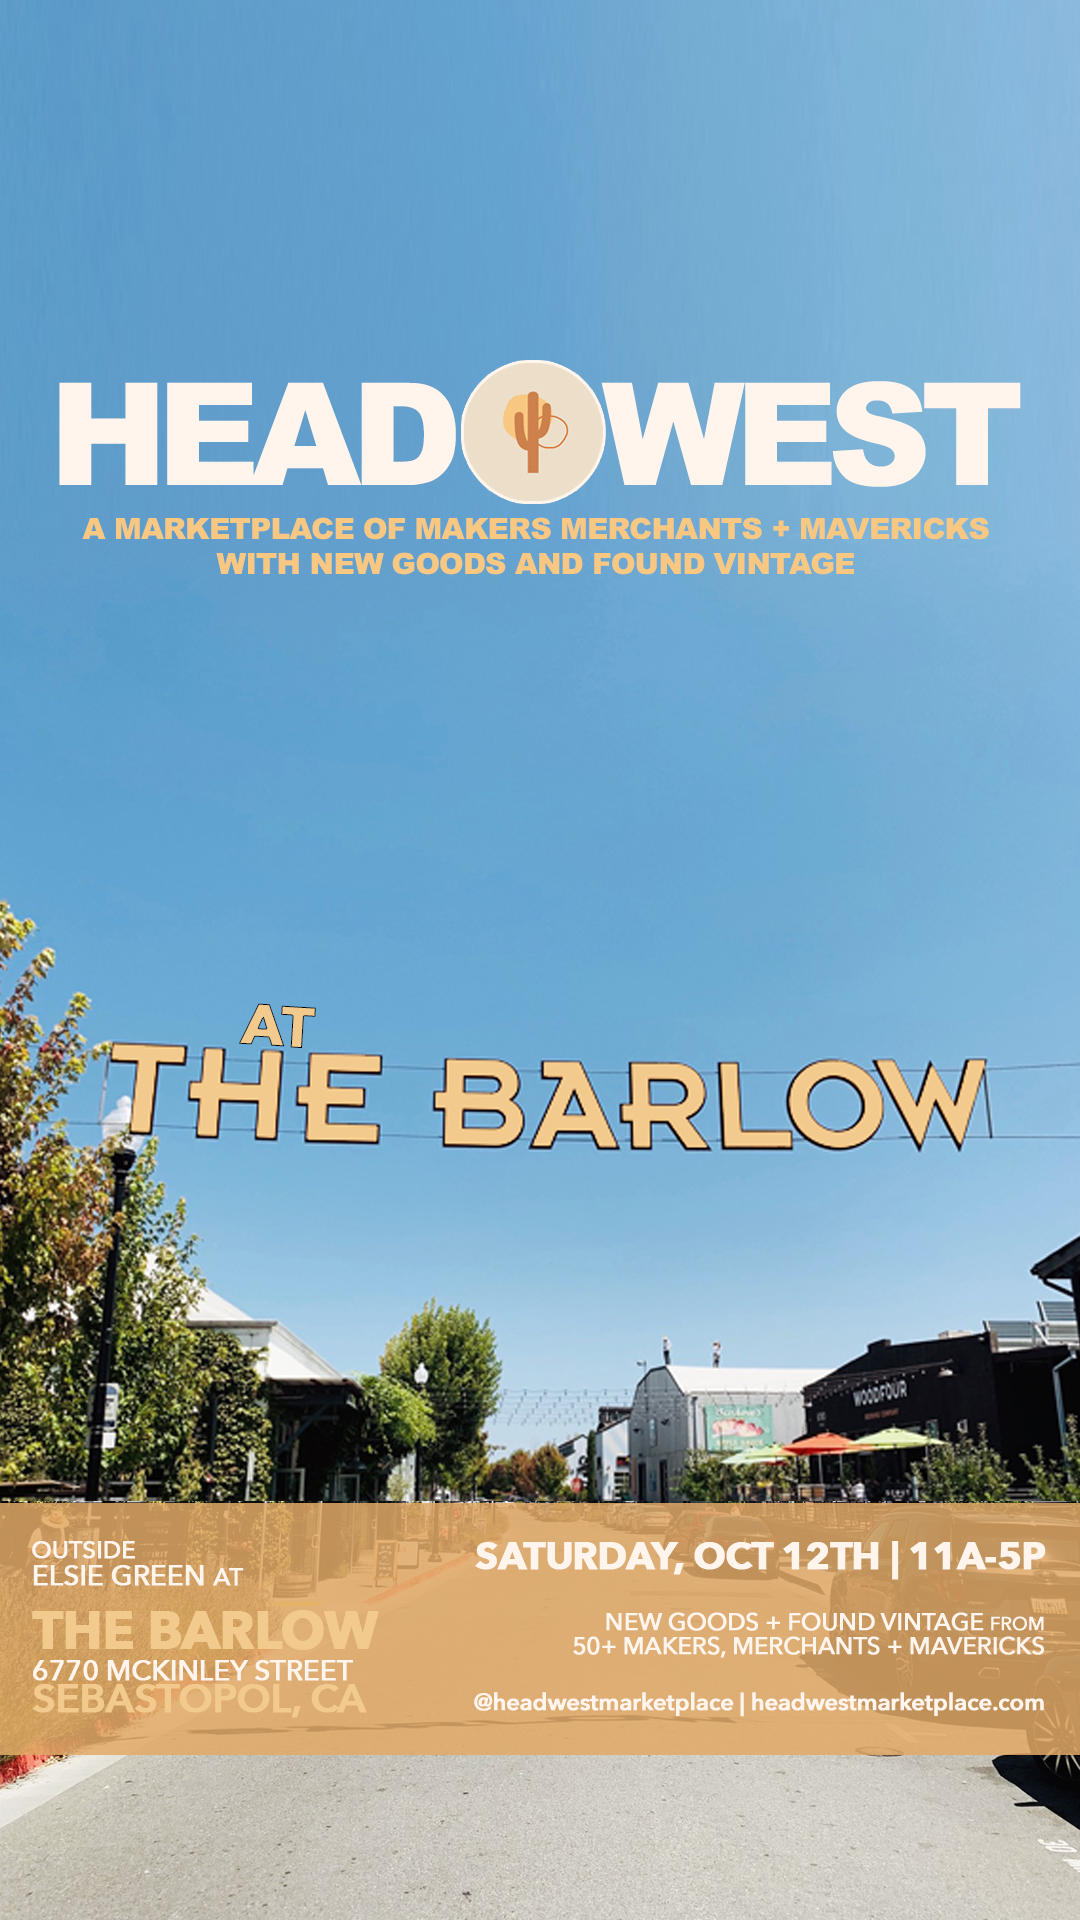 HEADWEST_TheBarlow_igstory101219.png